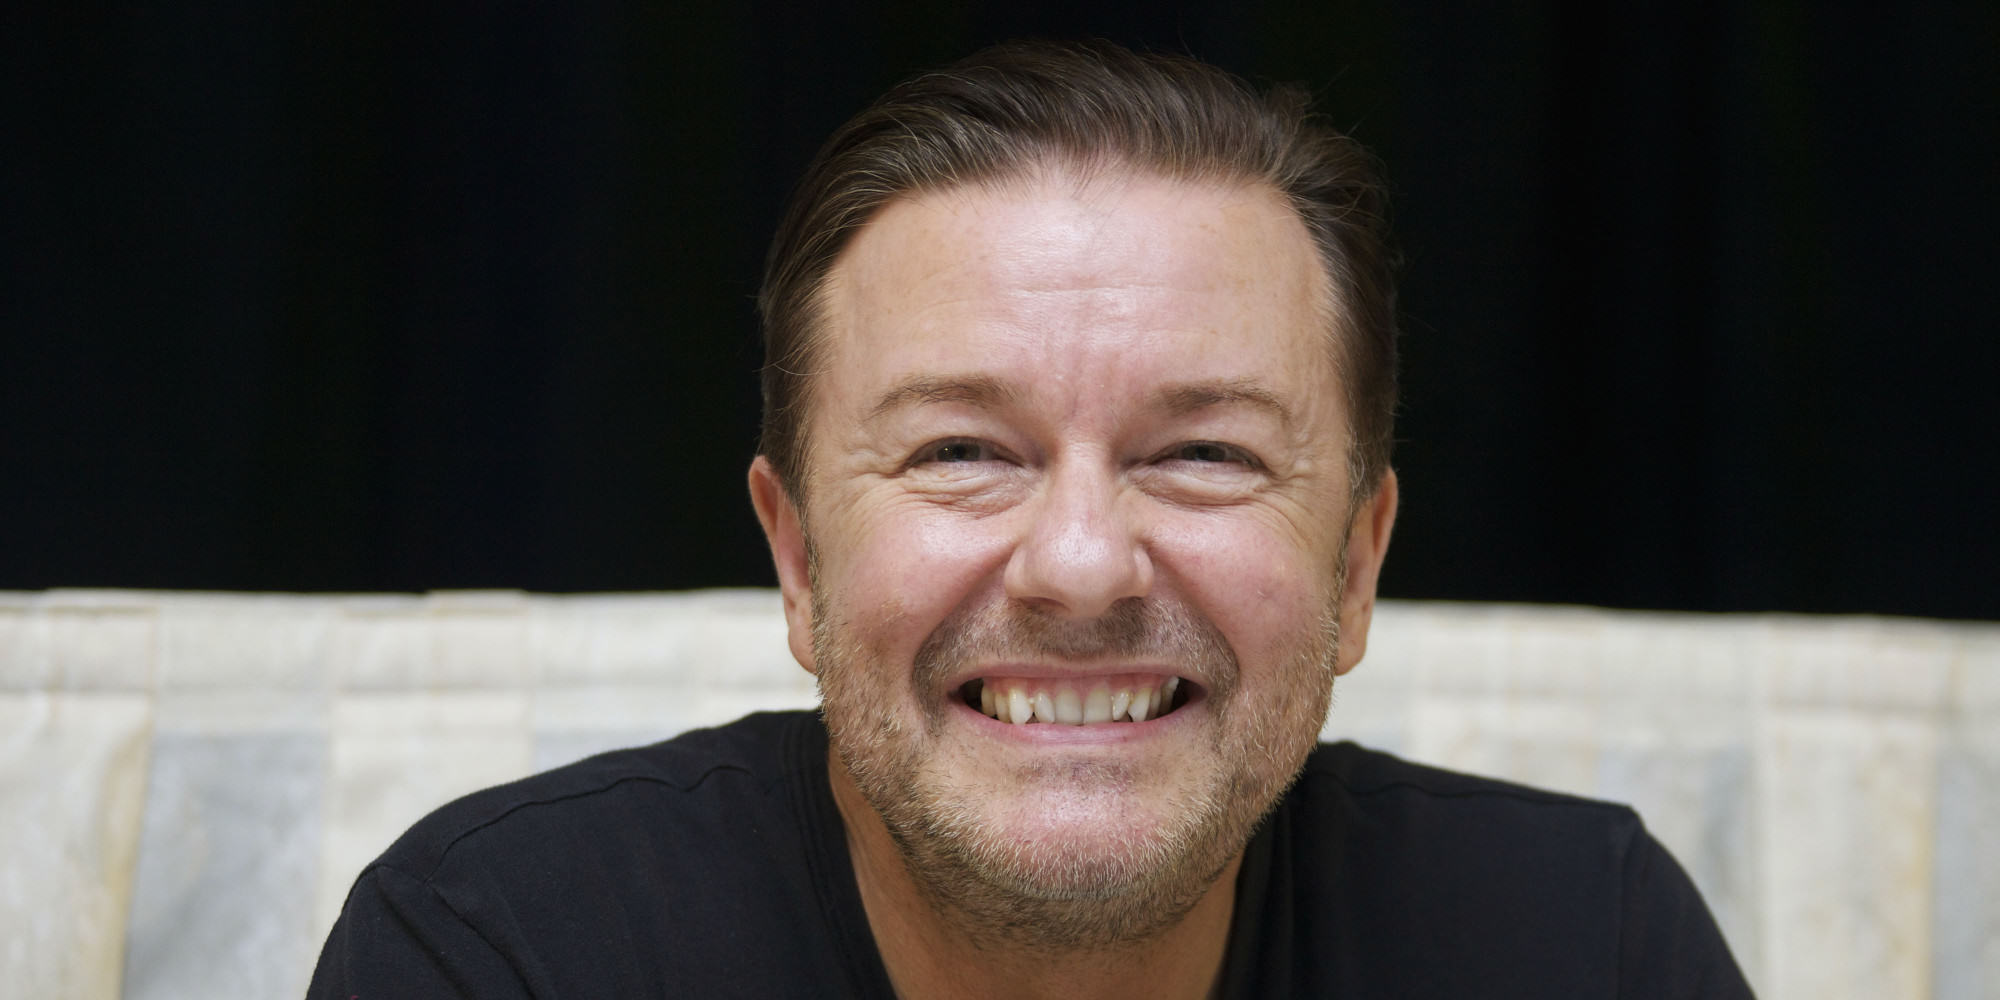 Ricky Gervais Takes Down Some Misconceptions About Atheism gervais 1